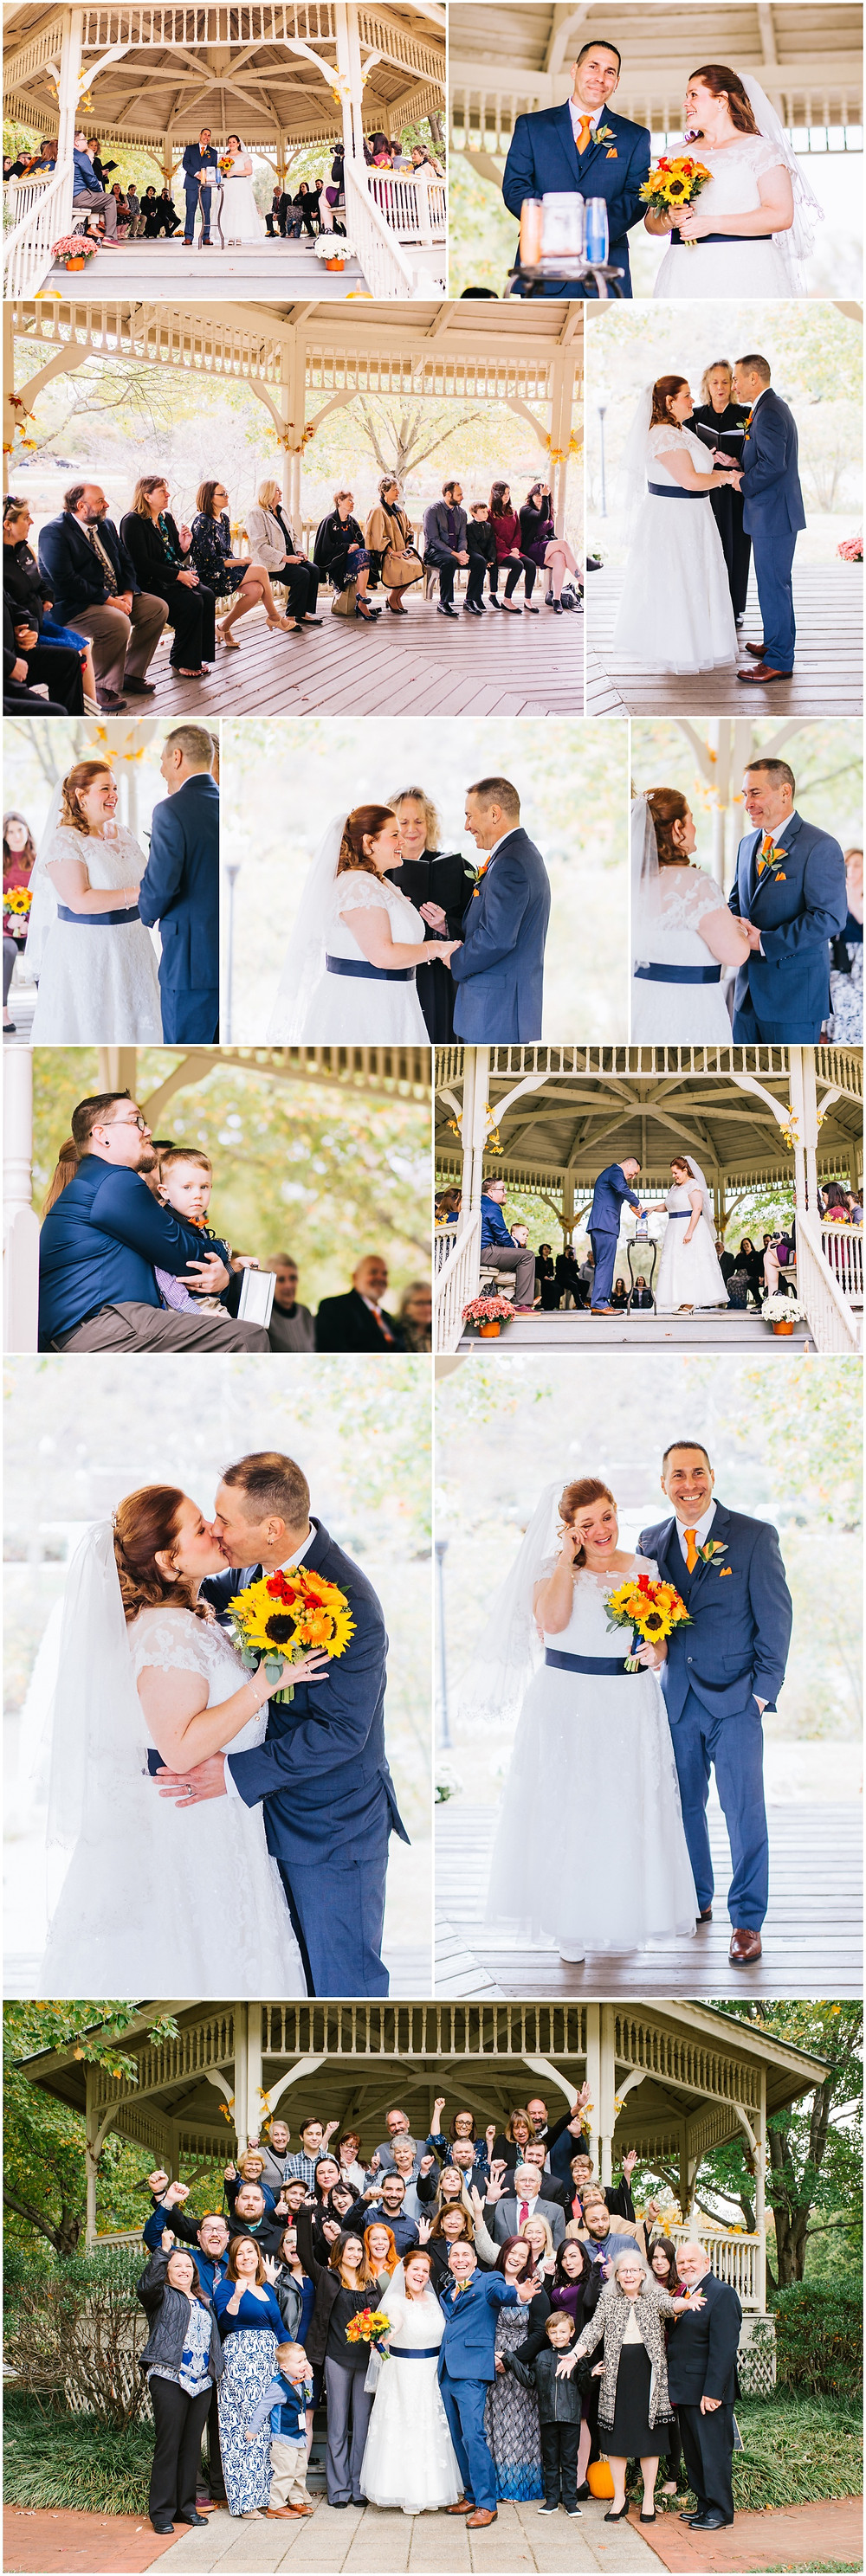 Intimate Wedding at Quiet Waters Park Annapolis Maryland